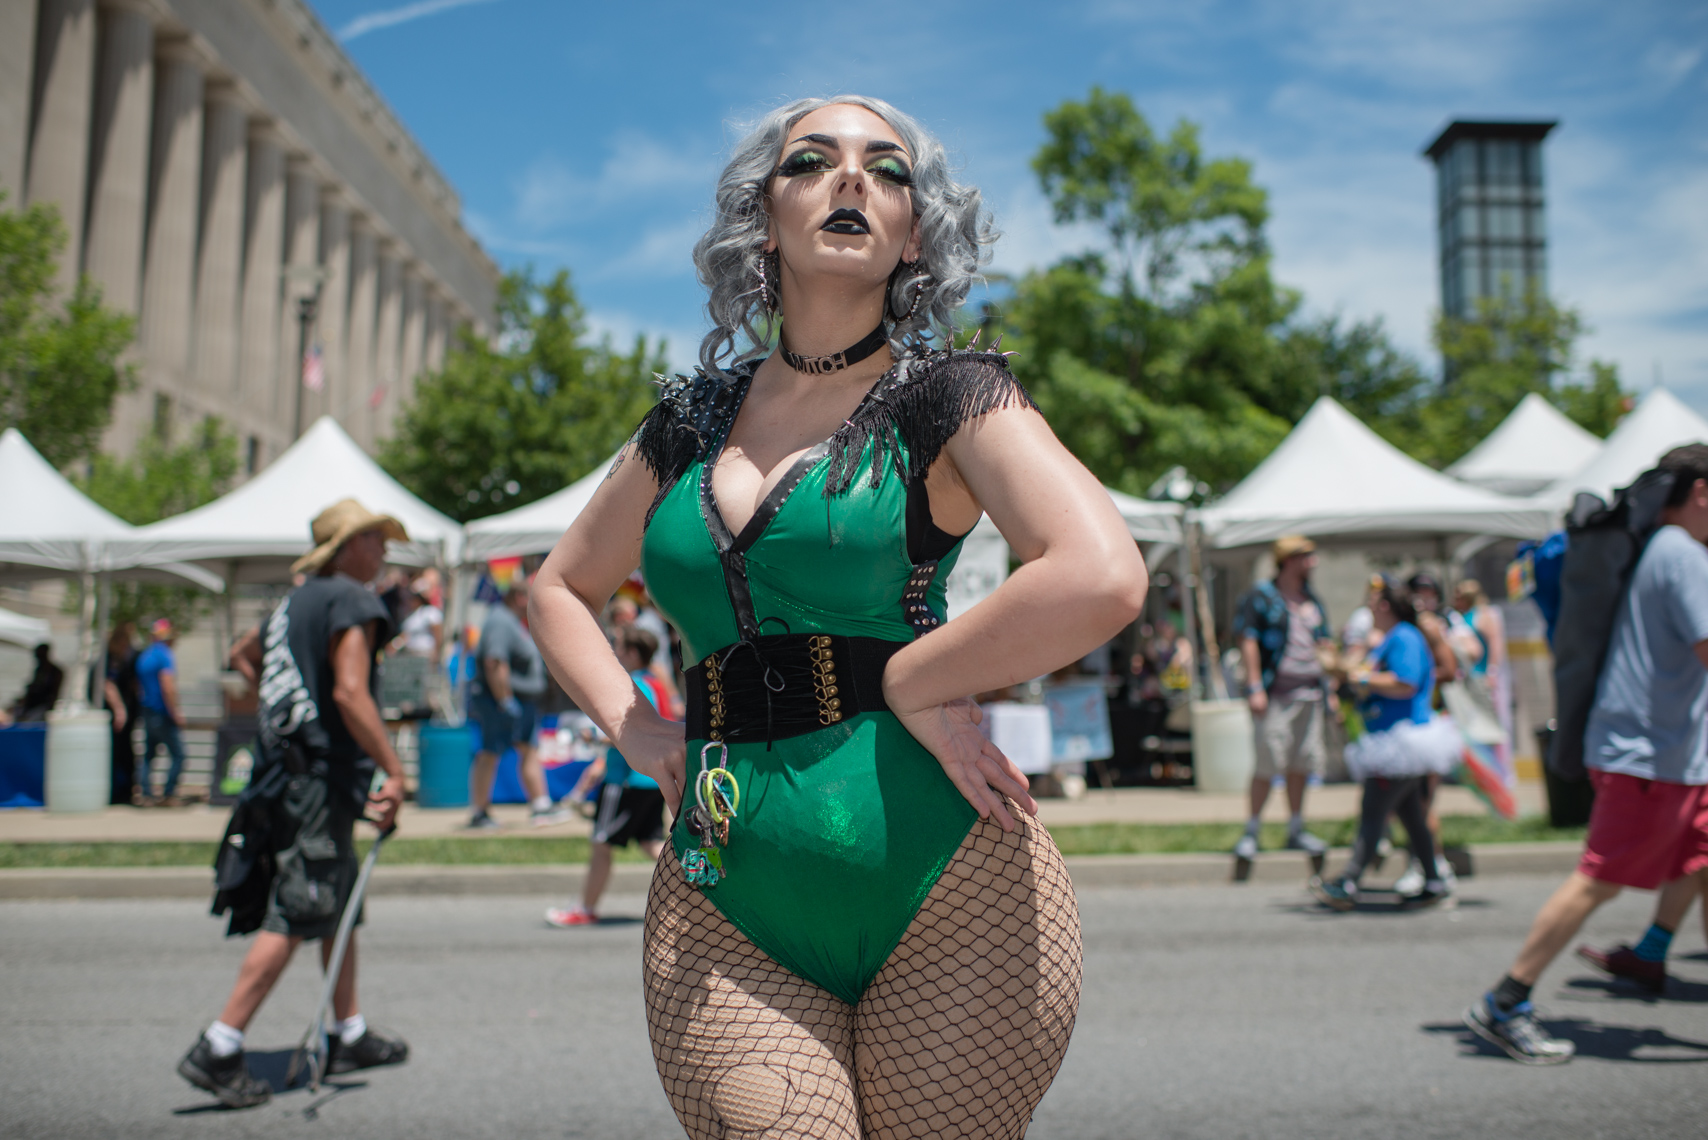 Nashville Pride Festival 2017 | Photographer + Director, Kristina Krug | authentic, authenticity, bisexual, celebrate, celebration, civil, civil liberties, drag queen, courage, dancing, documentary, drag, emotions, equality, esteem, fearless, festival, festive, free, freedom, friends, fun, gay, happy, journalism, joy, joyful, Kristina Krug, krug photo, lesbian, LGBT, LGBTQ, liberty, love, love wins, loved, love is love, loveliness, lovers, love wins, men, National Pride Day, parade, people, photographer, photojournalism, photojournalist, Portrait, Predators, pride, Pride Parade, proud, queen, queer, relationship, reportage, respect, rights, safety, self, sexuality, summer, sun, sunny, drag queen, transgender woman at Public Square Park